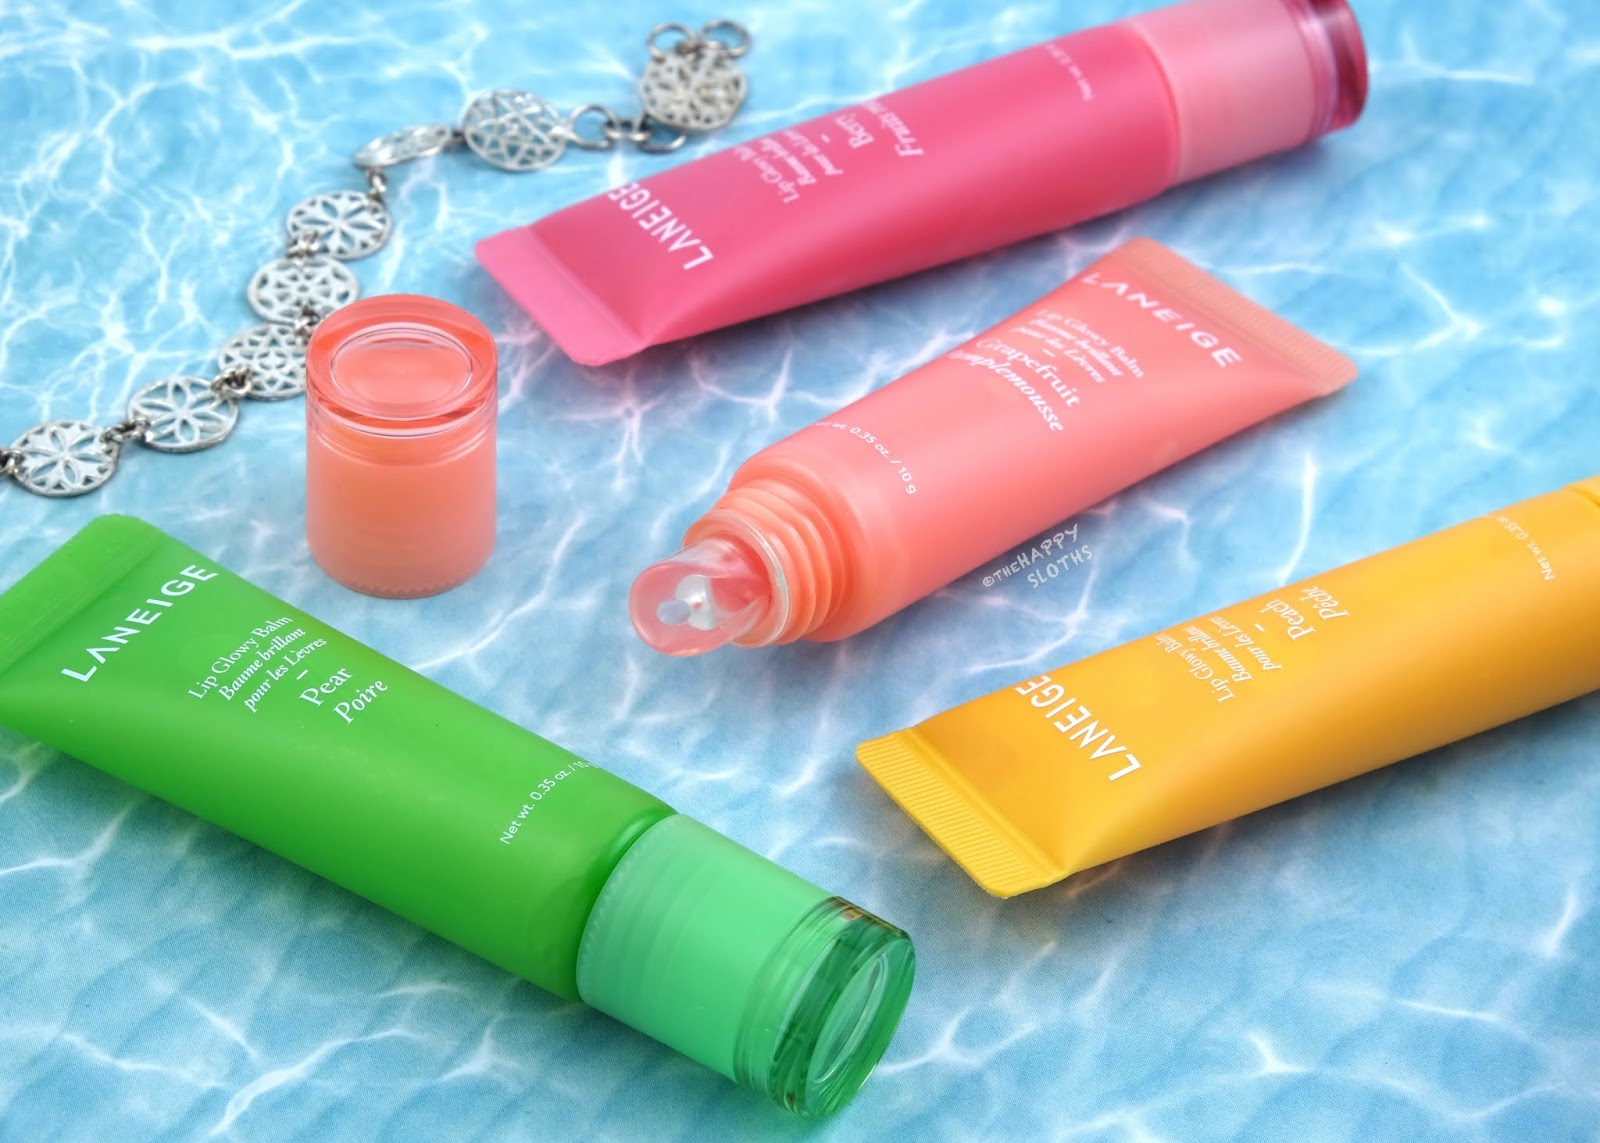 LANEIGE | Lip Glowy Balm: Review and Swatches